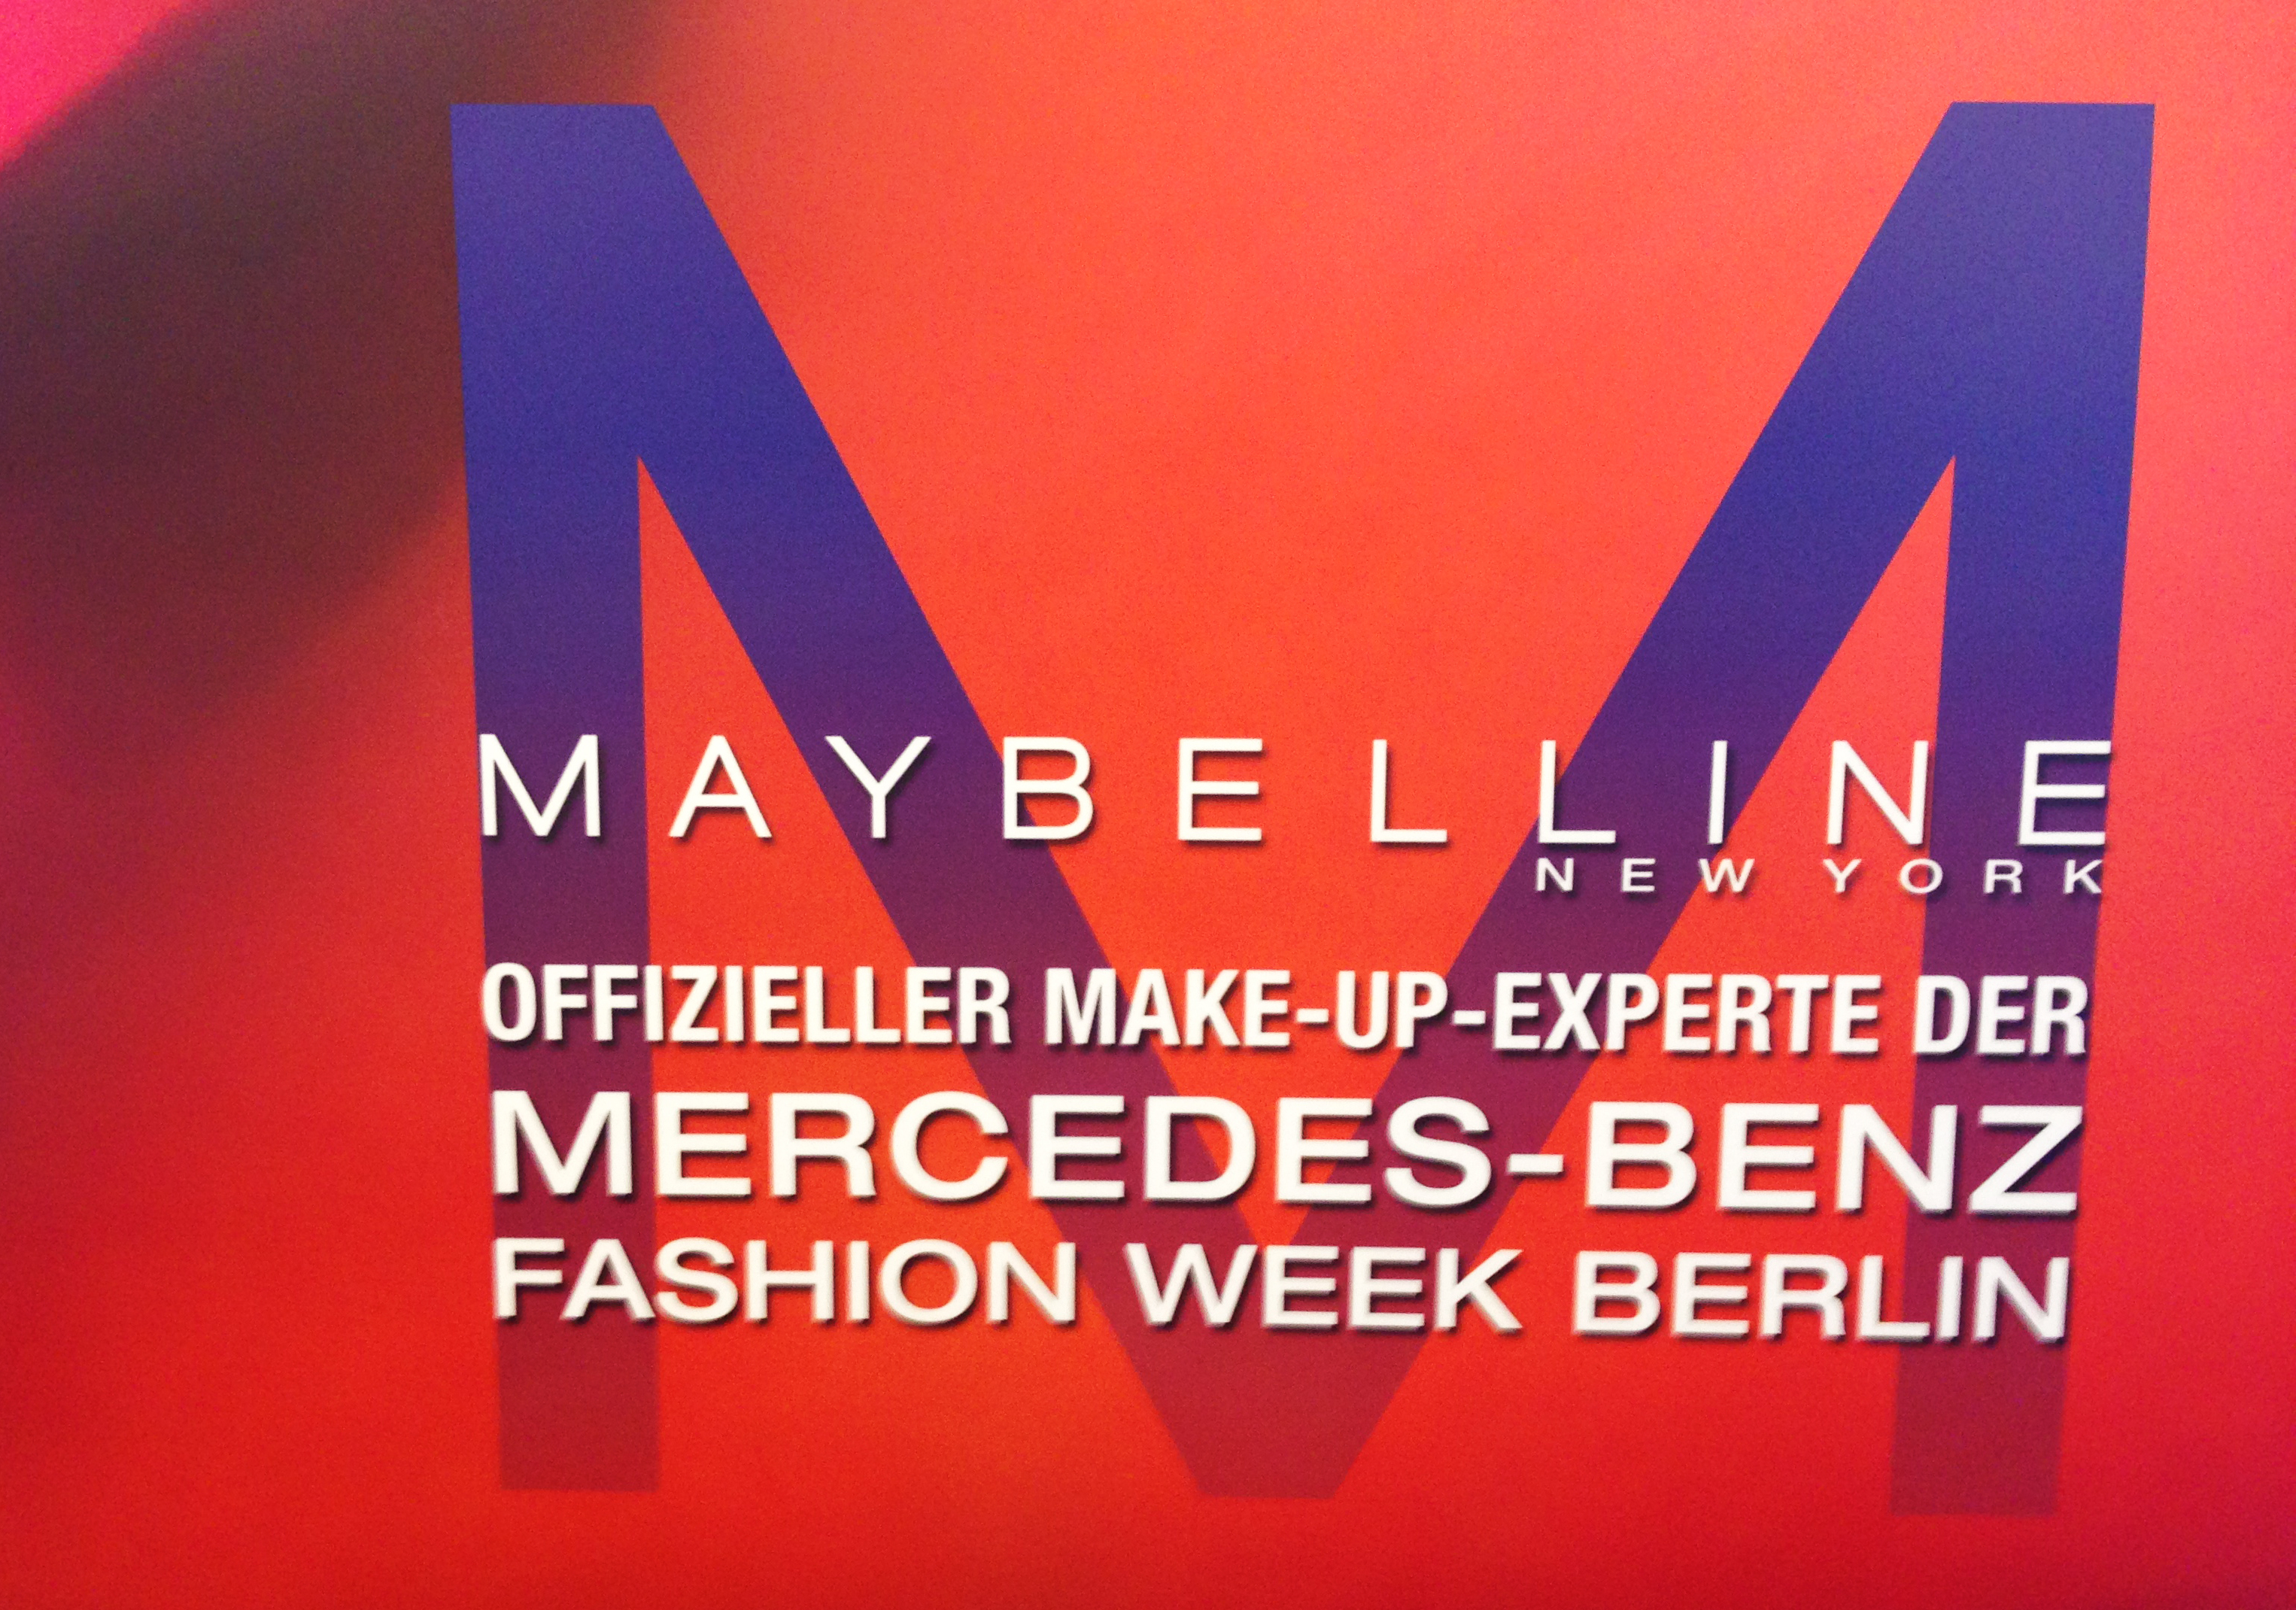 maybelline banner